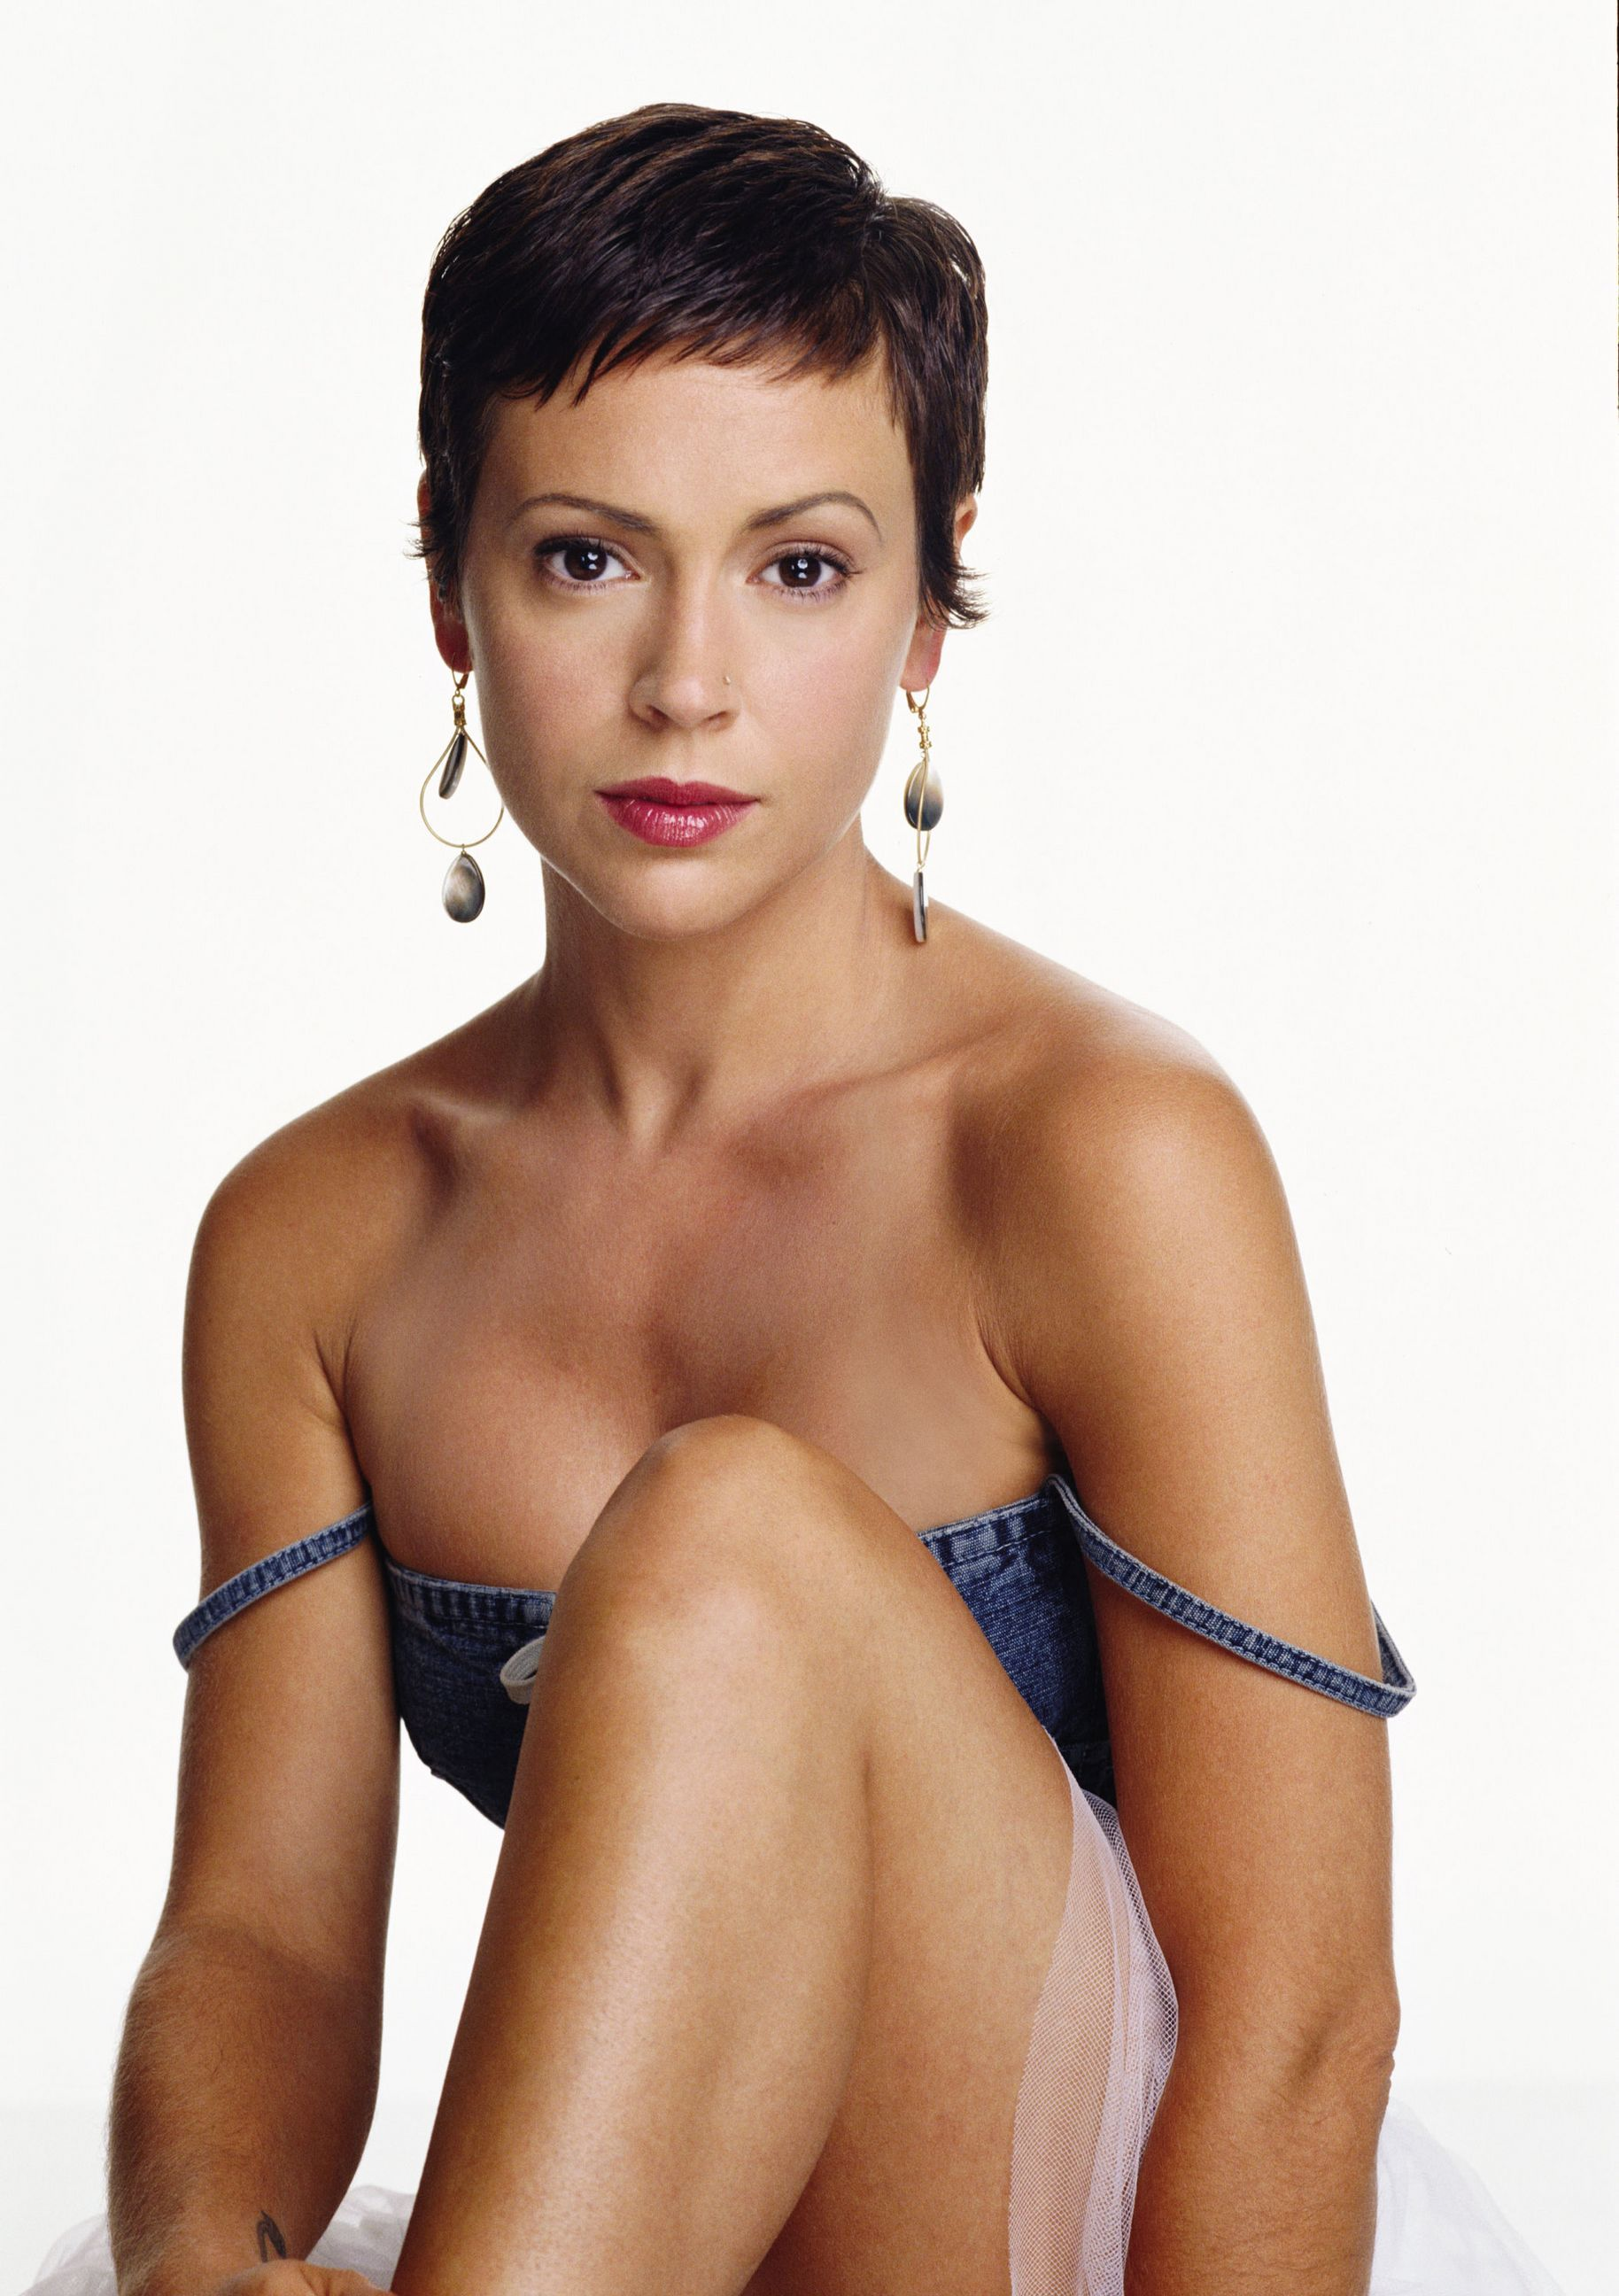 Sideboobs Alyssa Milano nude (56 photo), Tits, Cleavage, Boobs, cleavage 2017